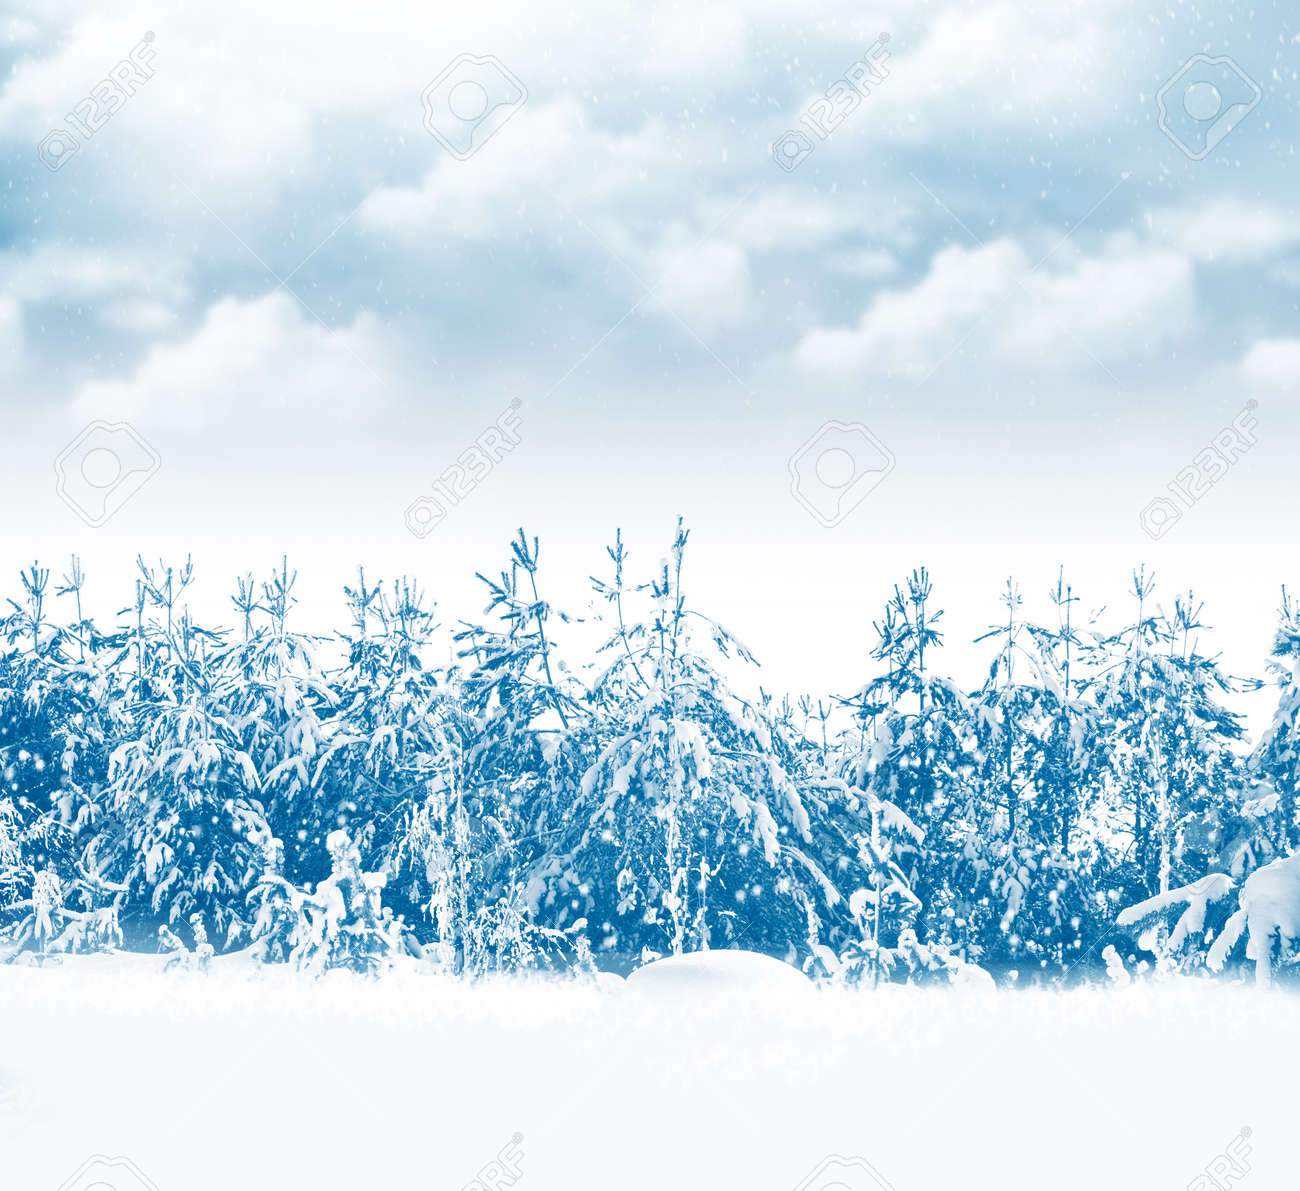 Frozen winter forest with snow covered trees. outdoor - 158519936